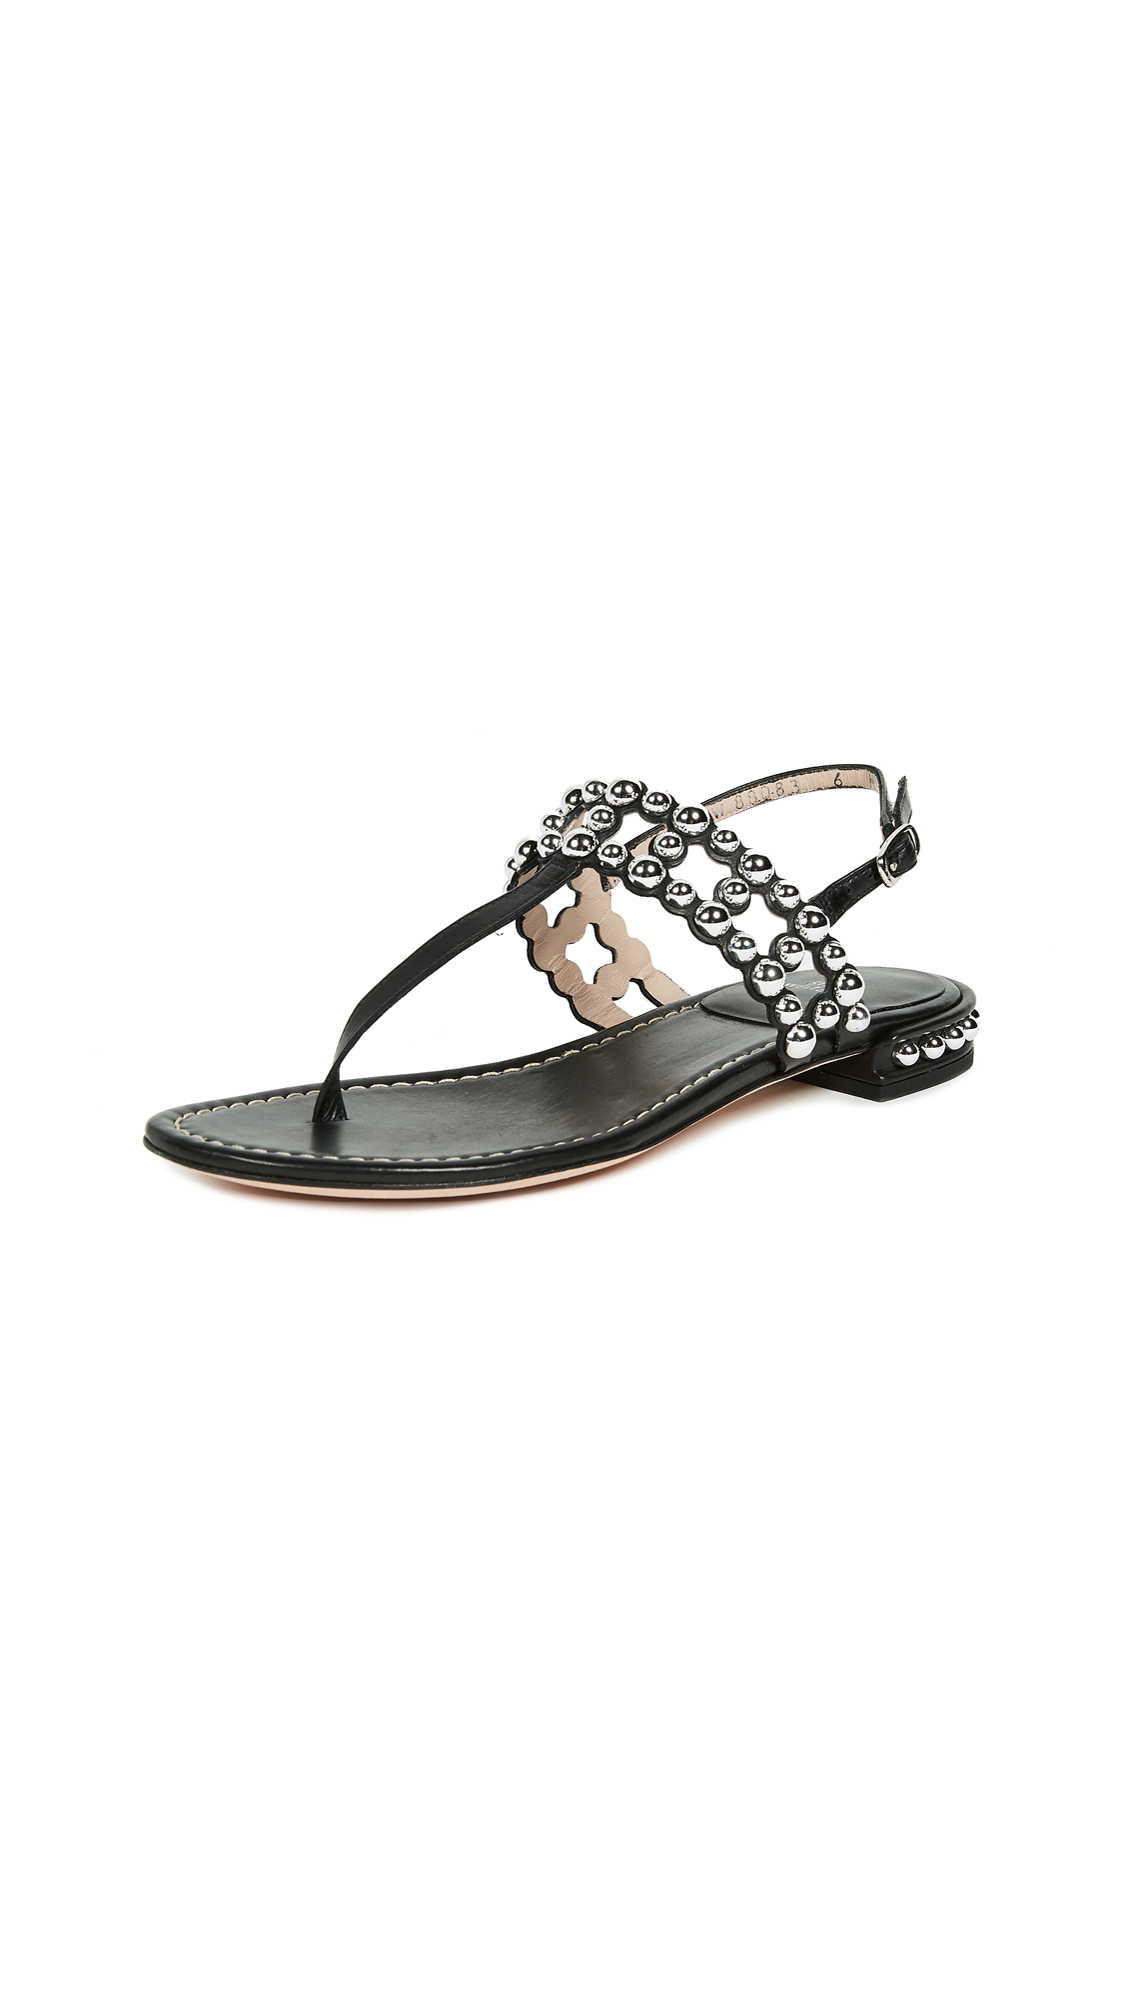 Stuart Weitzman Taxi Thong Sandals - Black